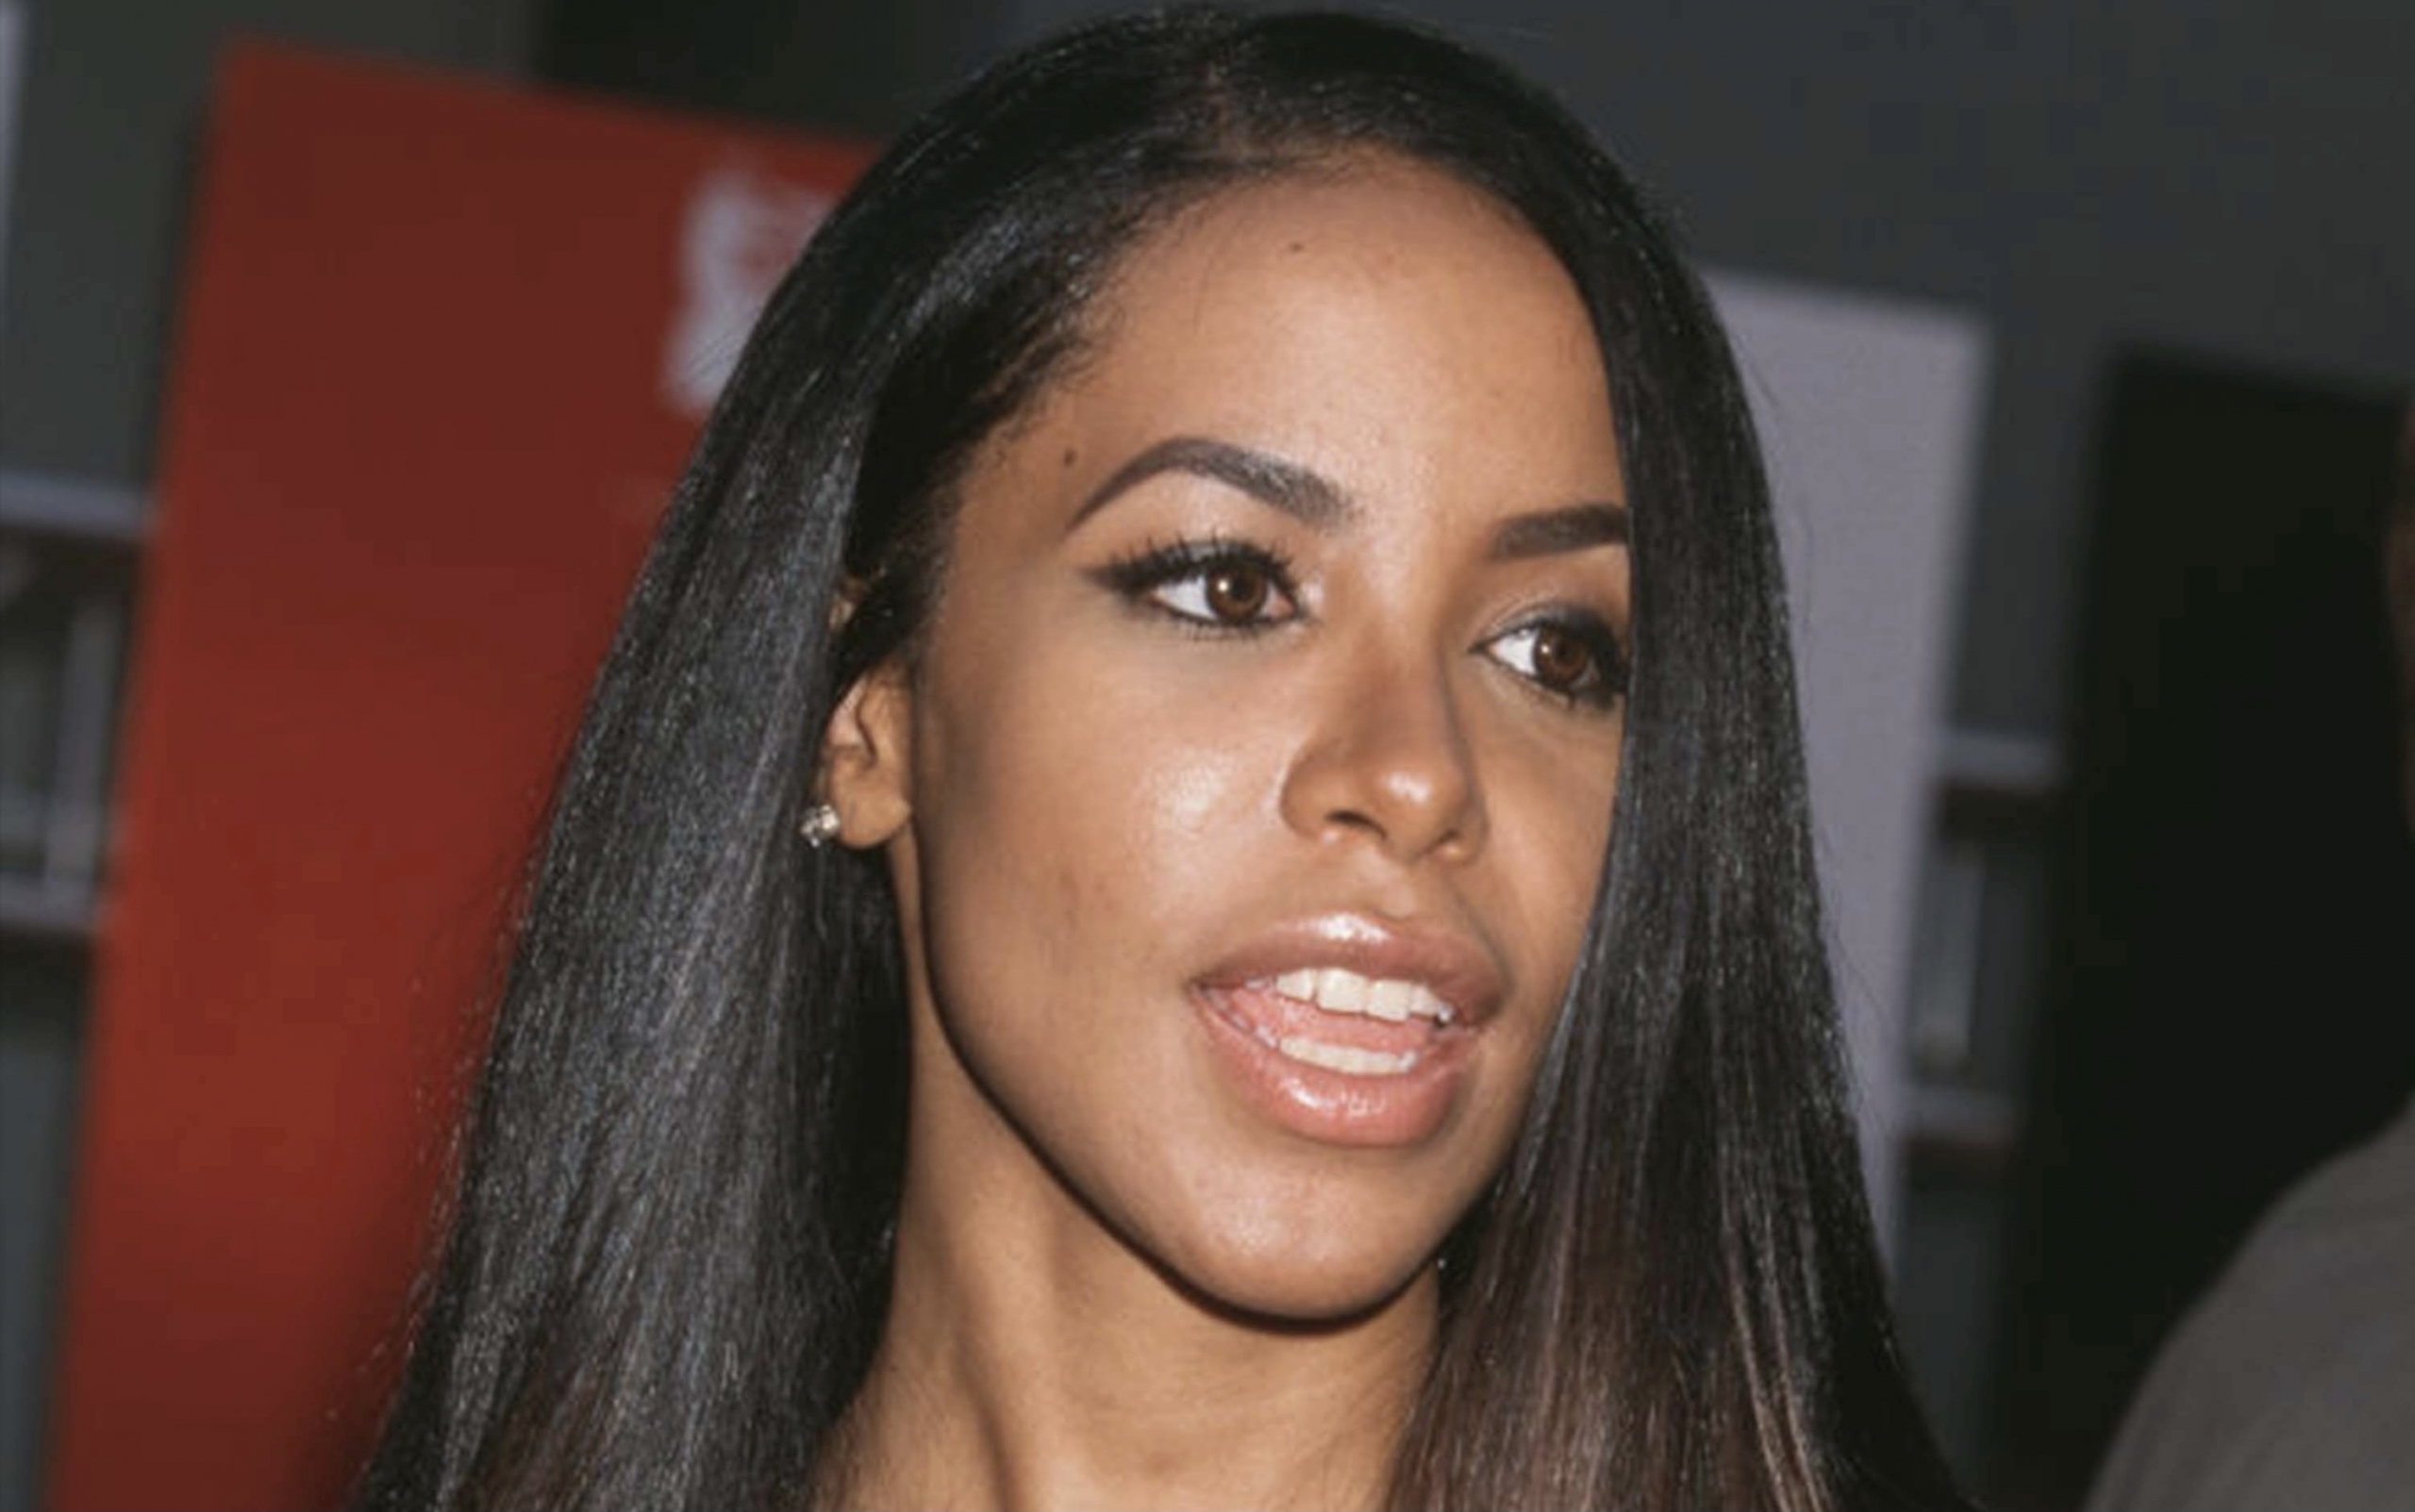 Aaliyah's Posthumous Albums 'I Care 4 U' & 'Ultimately Aaliyah' Are Now Available On Streaming Platforms